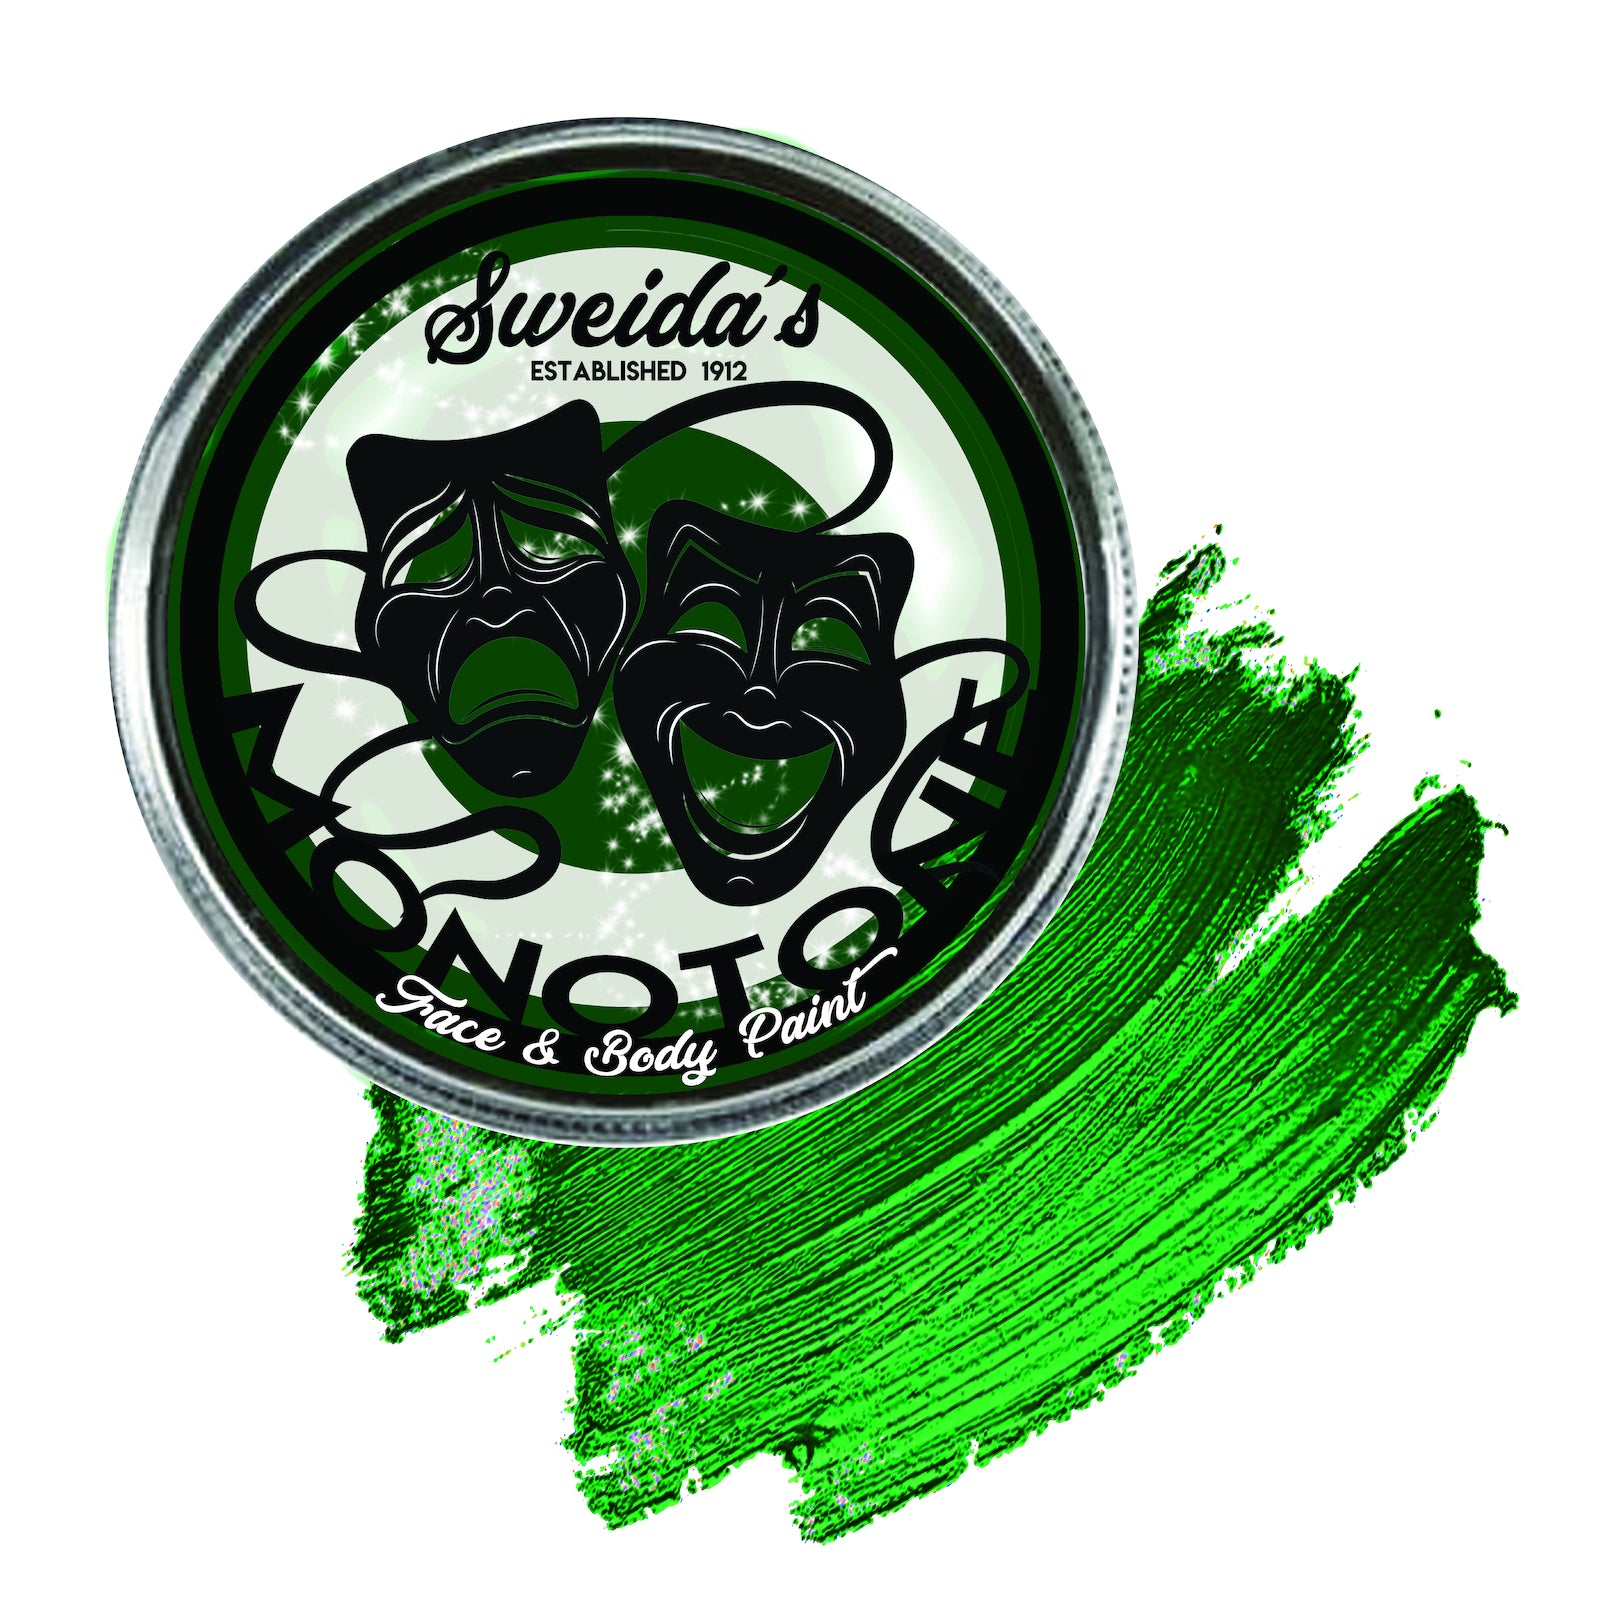 Forest Green - Monotone Pancake 32g